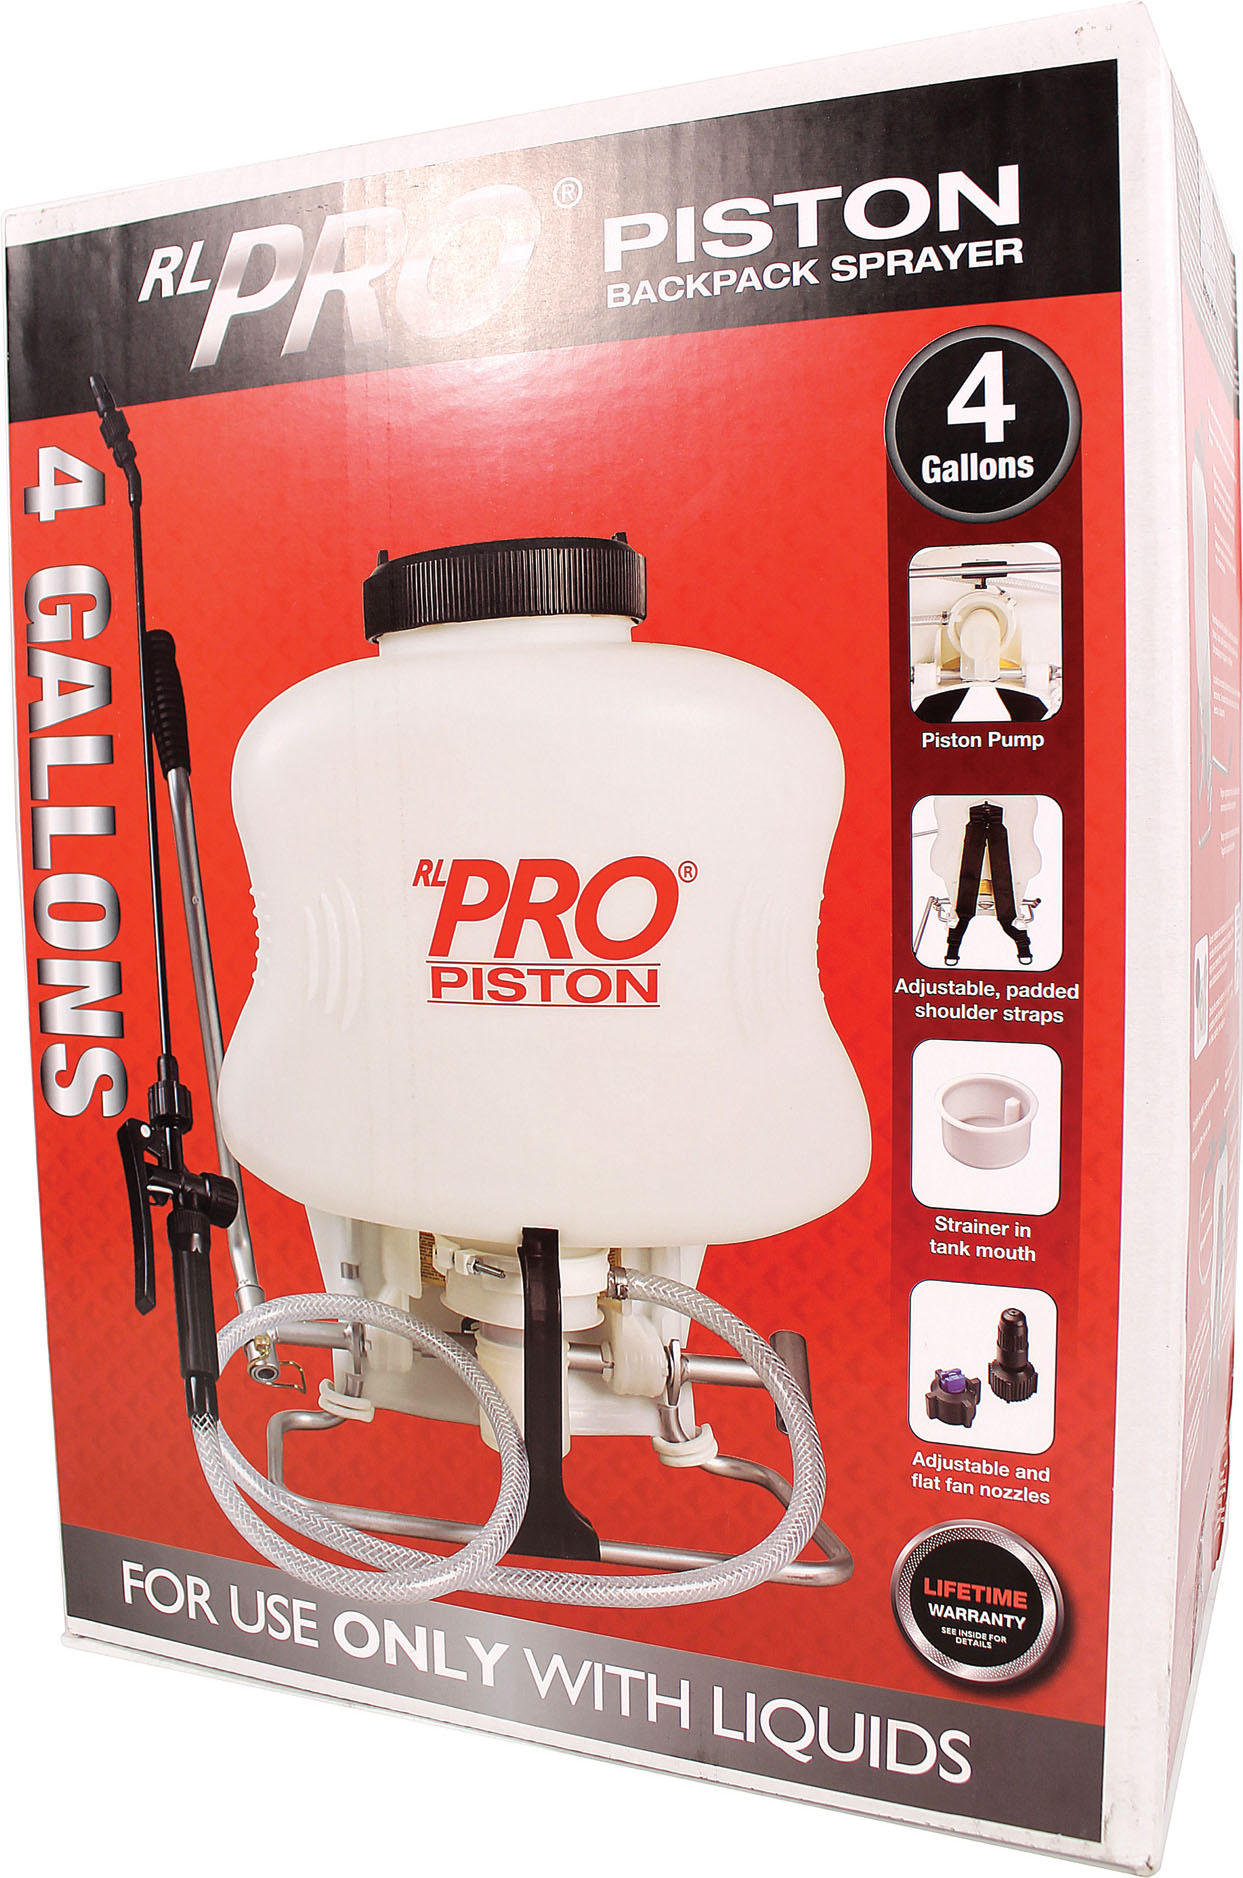 RL Flo-Master 4 Gallon Piston Backpack Sprayer by Root Lowell Manufacturing Co.